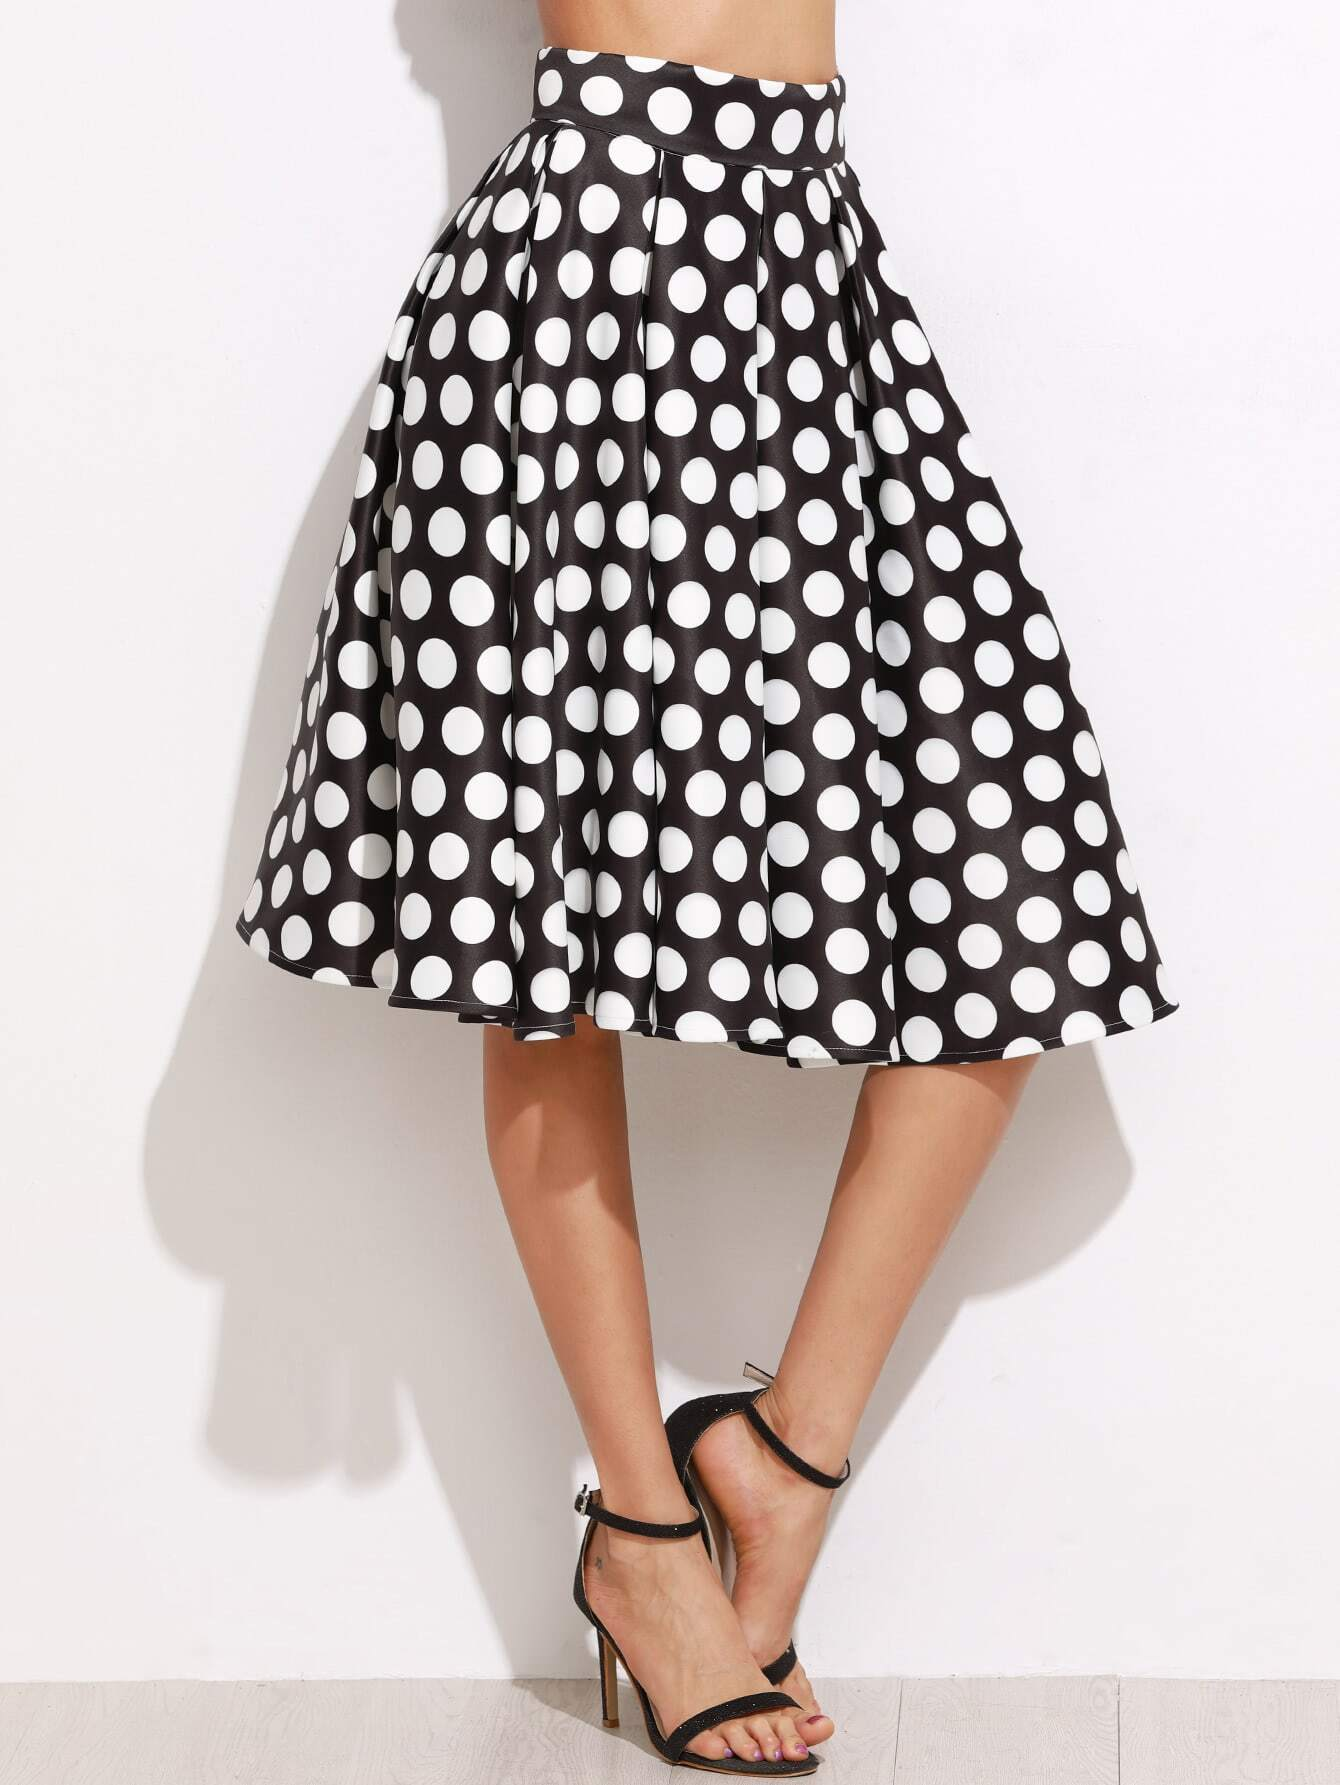 Black Polka Dot Print Box Pleated SkirtBlack Polka Dot Print Box Pleated Skirt<br><br>color: Black and White<br>size: L,S,XS